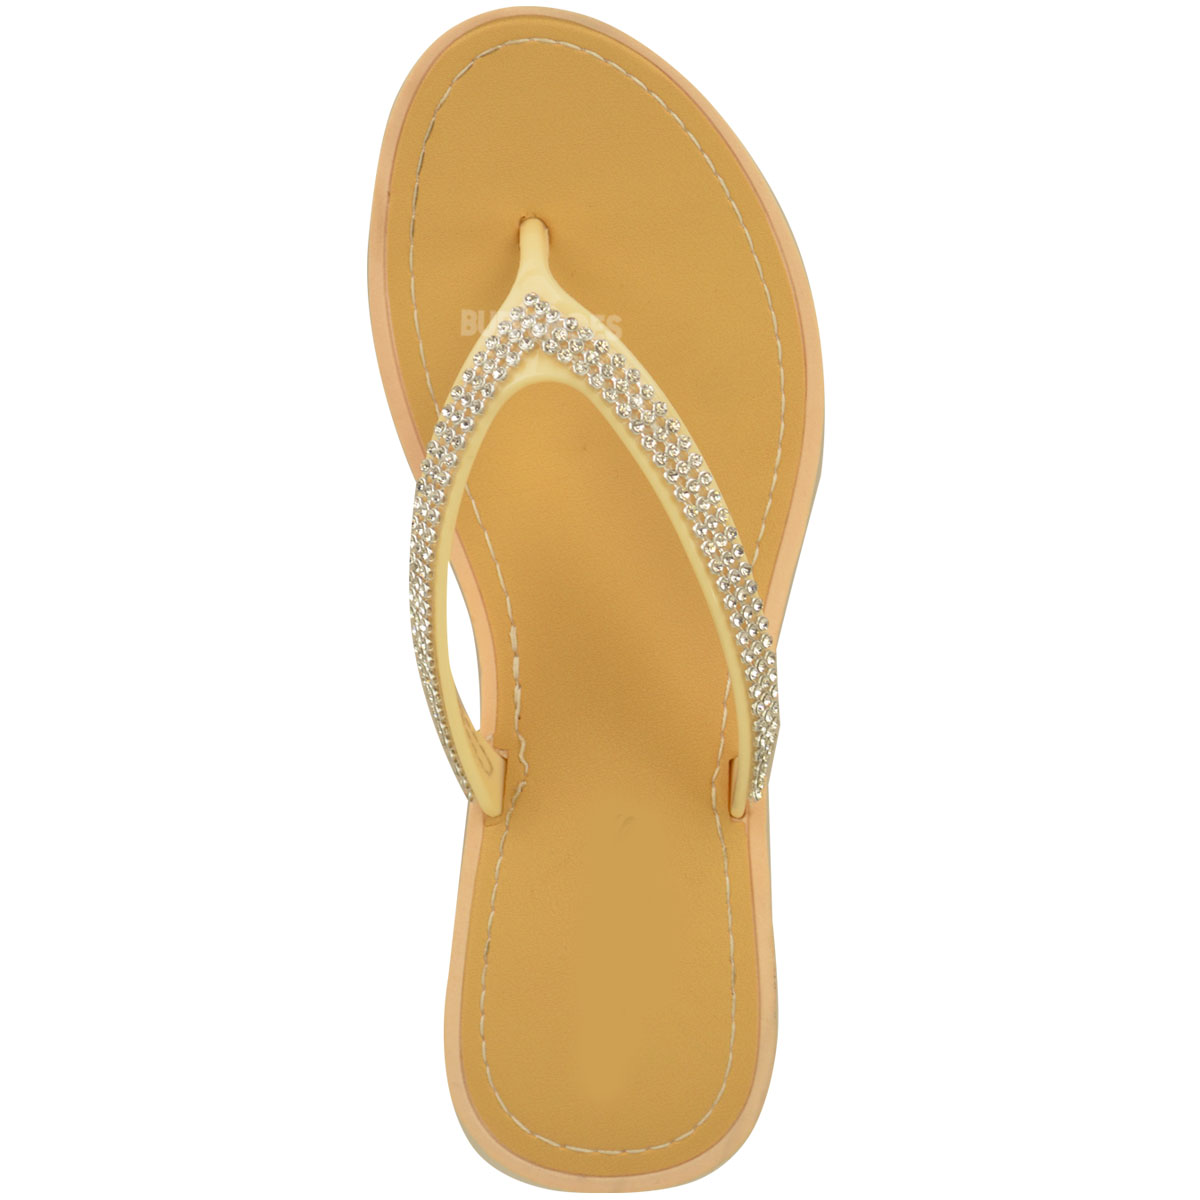 NEW-JELLY-SANDALS-WOMENS-LADIES-DIAMANTE-SUMMER-HOLIDAY-COMFORTS-FLIP-FLOPS-SIZE thumbnail 25